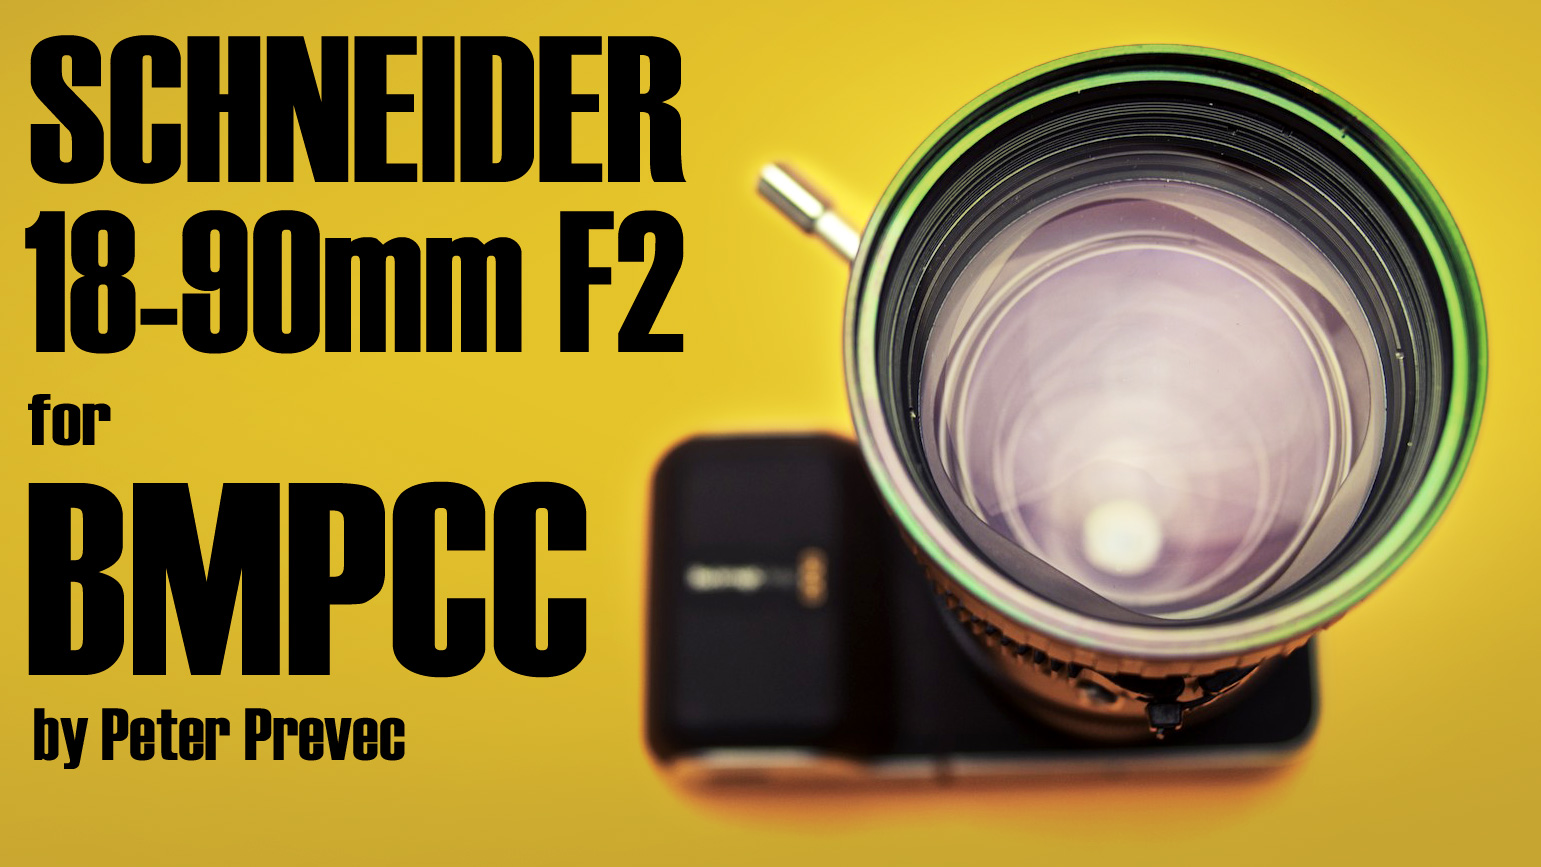 Schneider-Kreuznach Variogon 18-90mm F2 for BMPCC